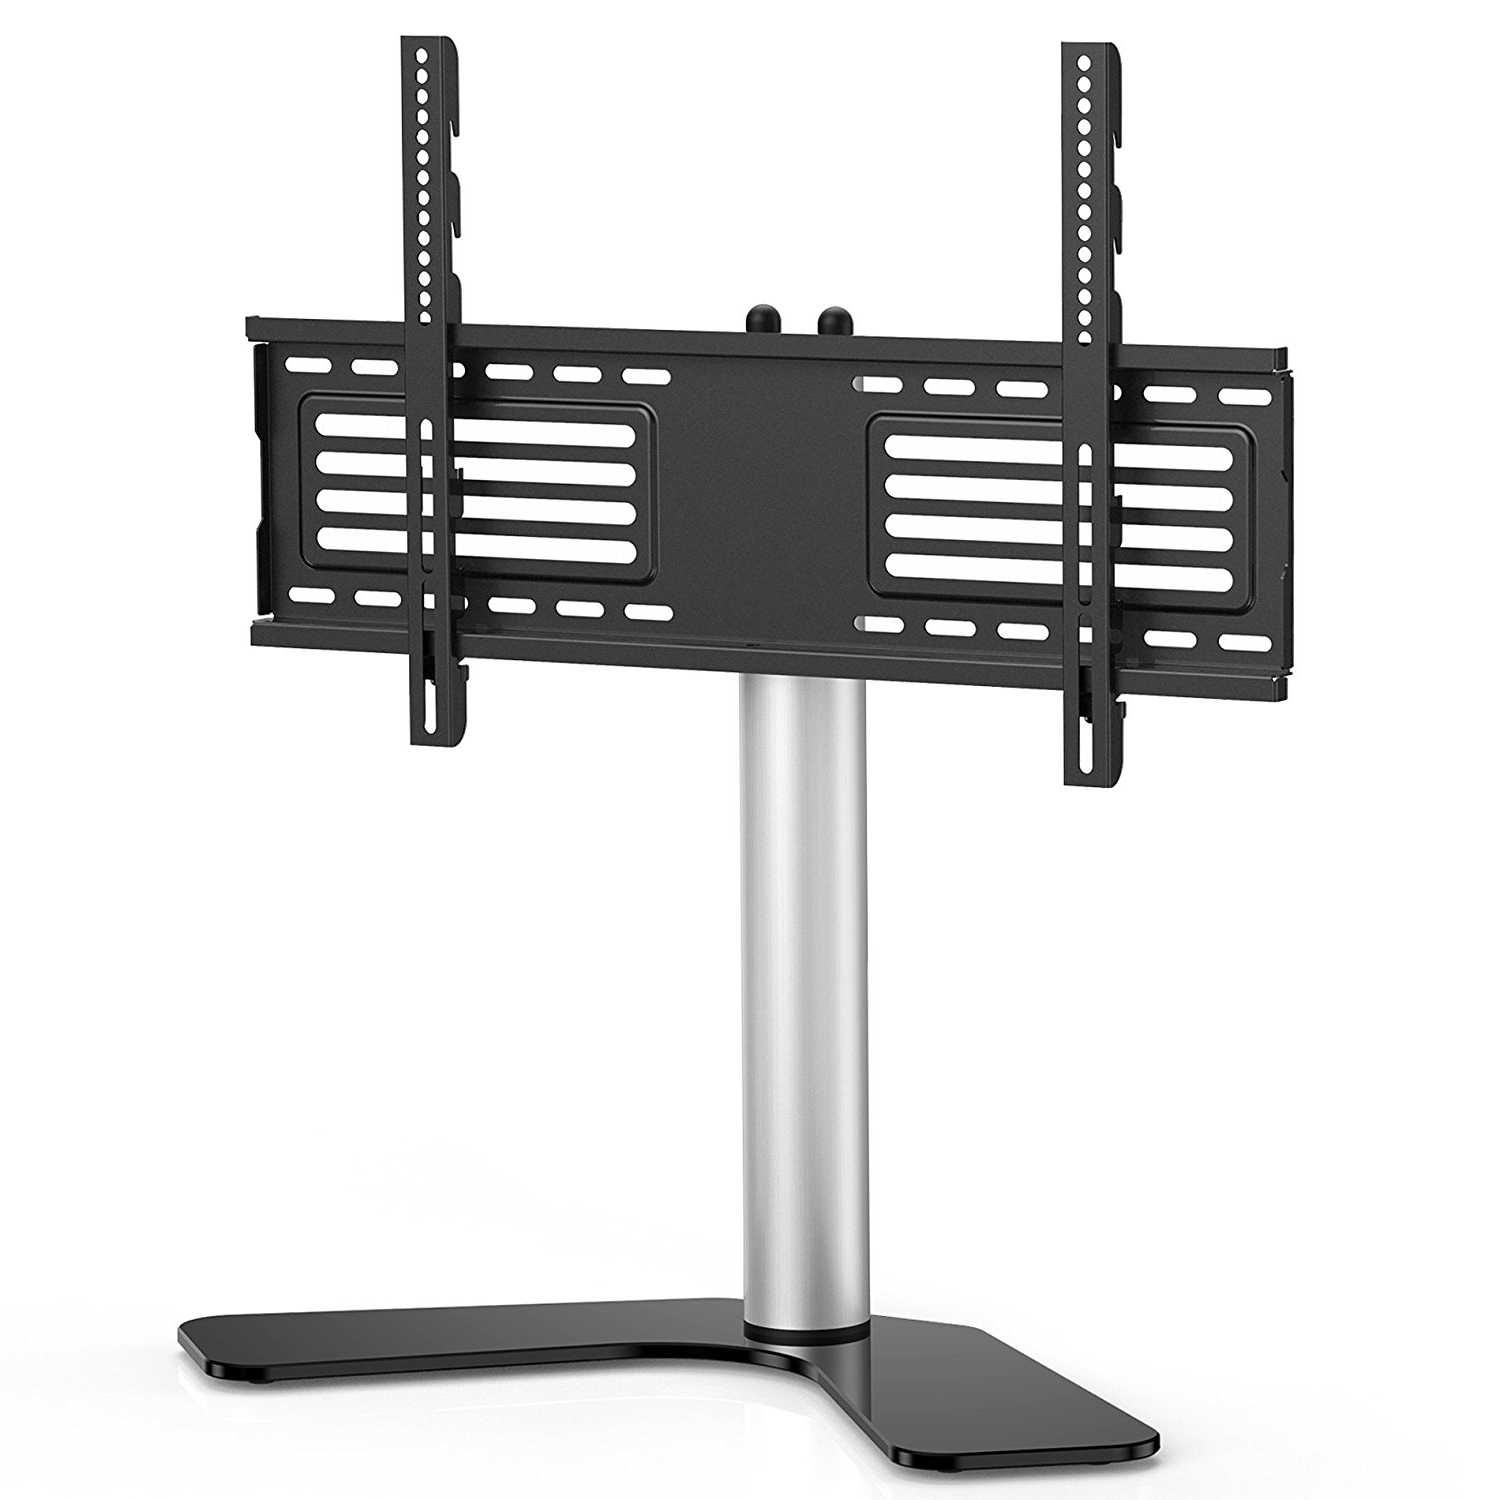 Most Recent Fitueyes Universal Swivel Tabletop Tv Stand With Mount For 32 To 65 Pertaining To Tabletop Tv Stands (View 6 of 20)